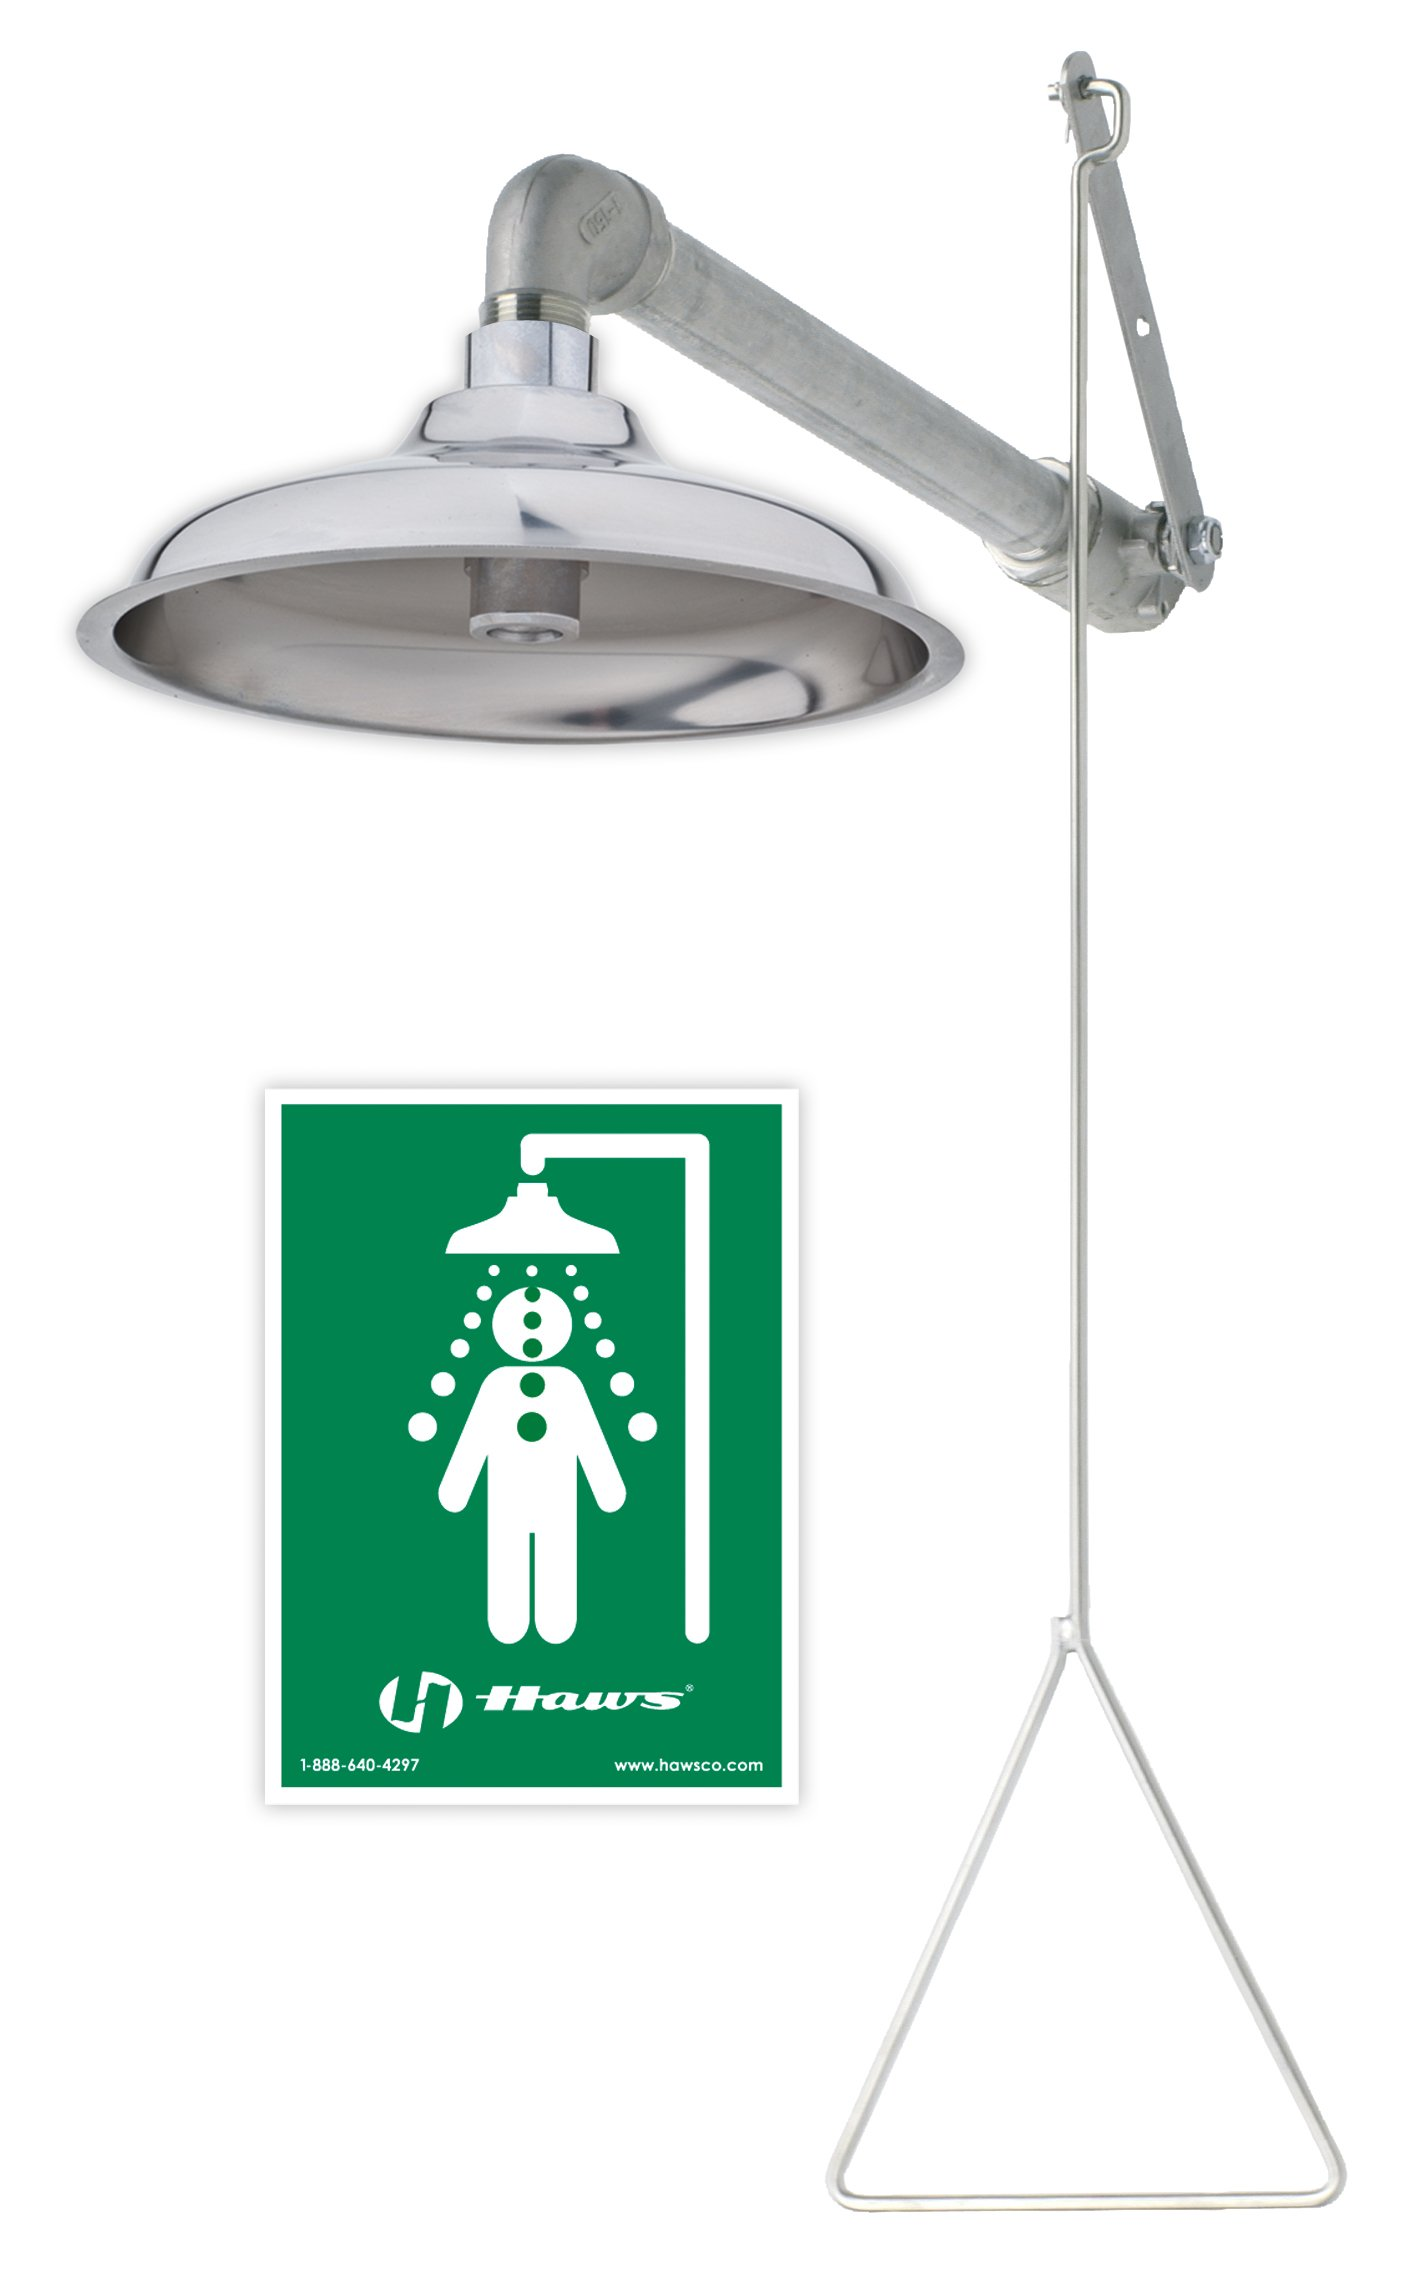 Haws 8133H Stainless Steel Corrosion-resistant, all stainless steel horizontal supply drench shower. 8133H